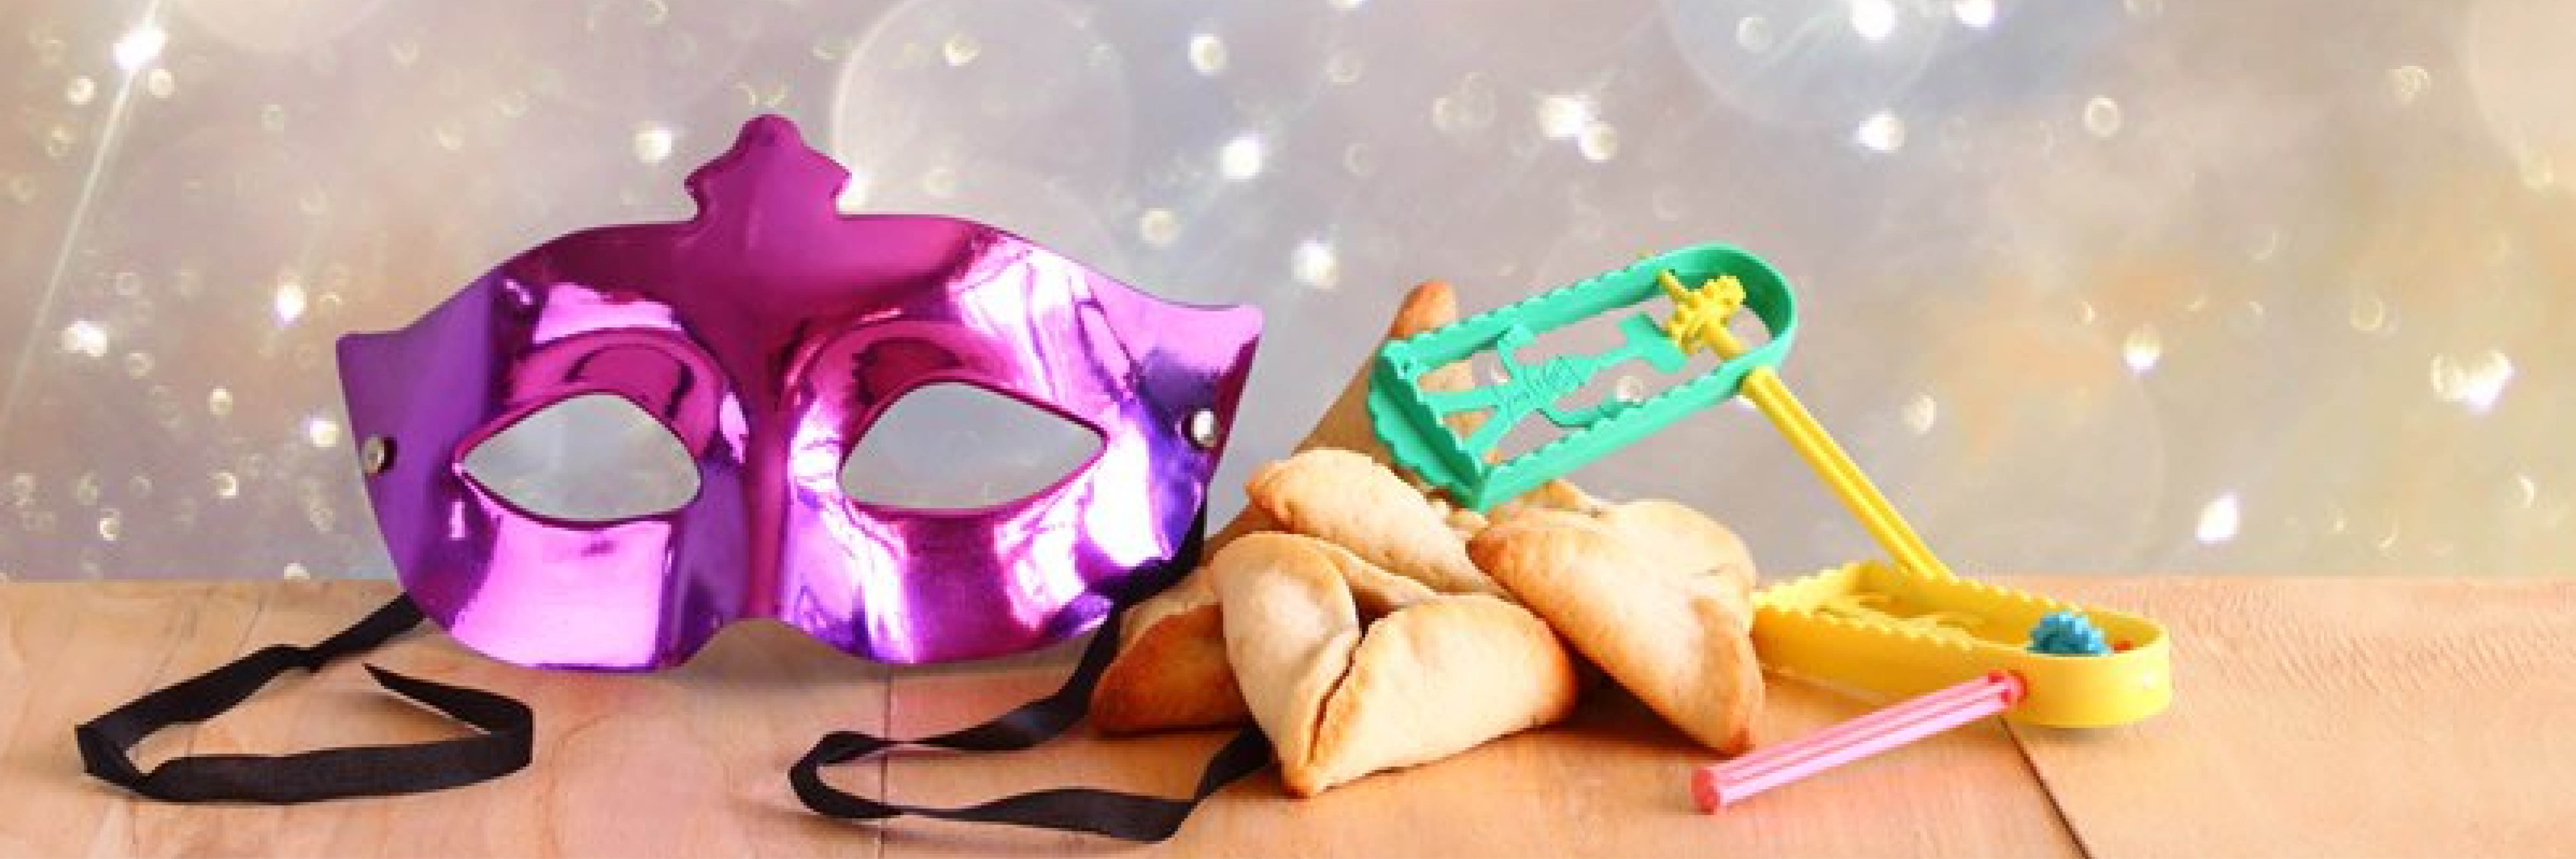 """<a href=""""https://www.bethsholomfrederick.org/event/megillah-reading-and-purim-trivia-.html""""                                     target="""""""">                                                                 <span class=""""slider_title"""">                                     Megillah Reading and Purim Trivia                                </span>                                                                 </a>                                                                                                                                                                                       <span class=""""slider_description"""">Please join us February 25th at 6:30 pm for The Megillah Reading and Purim Trivia. Bring your best costume and join us via zoom! See you there!</span>                                                                                     <a href=""""https://www.bethsholomfrederick.org/event/megillah-reading-and-purim-trivia-.html"""" class=""""slider_link""""                             target="""""""">                             Read More                            </a>"""